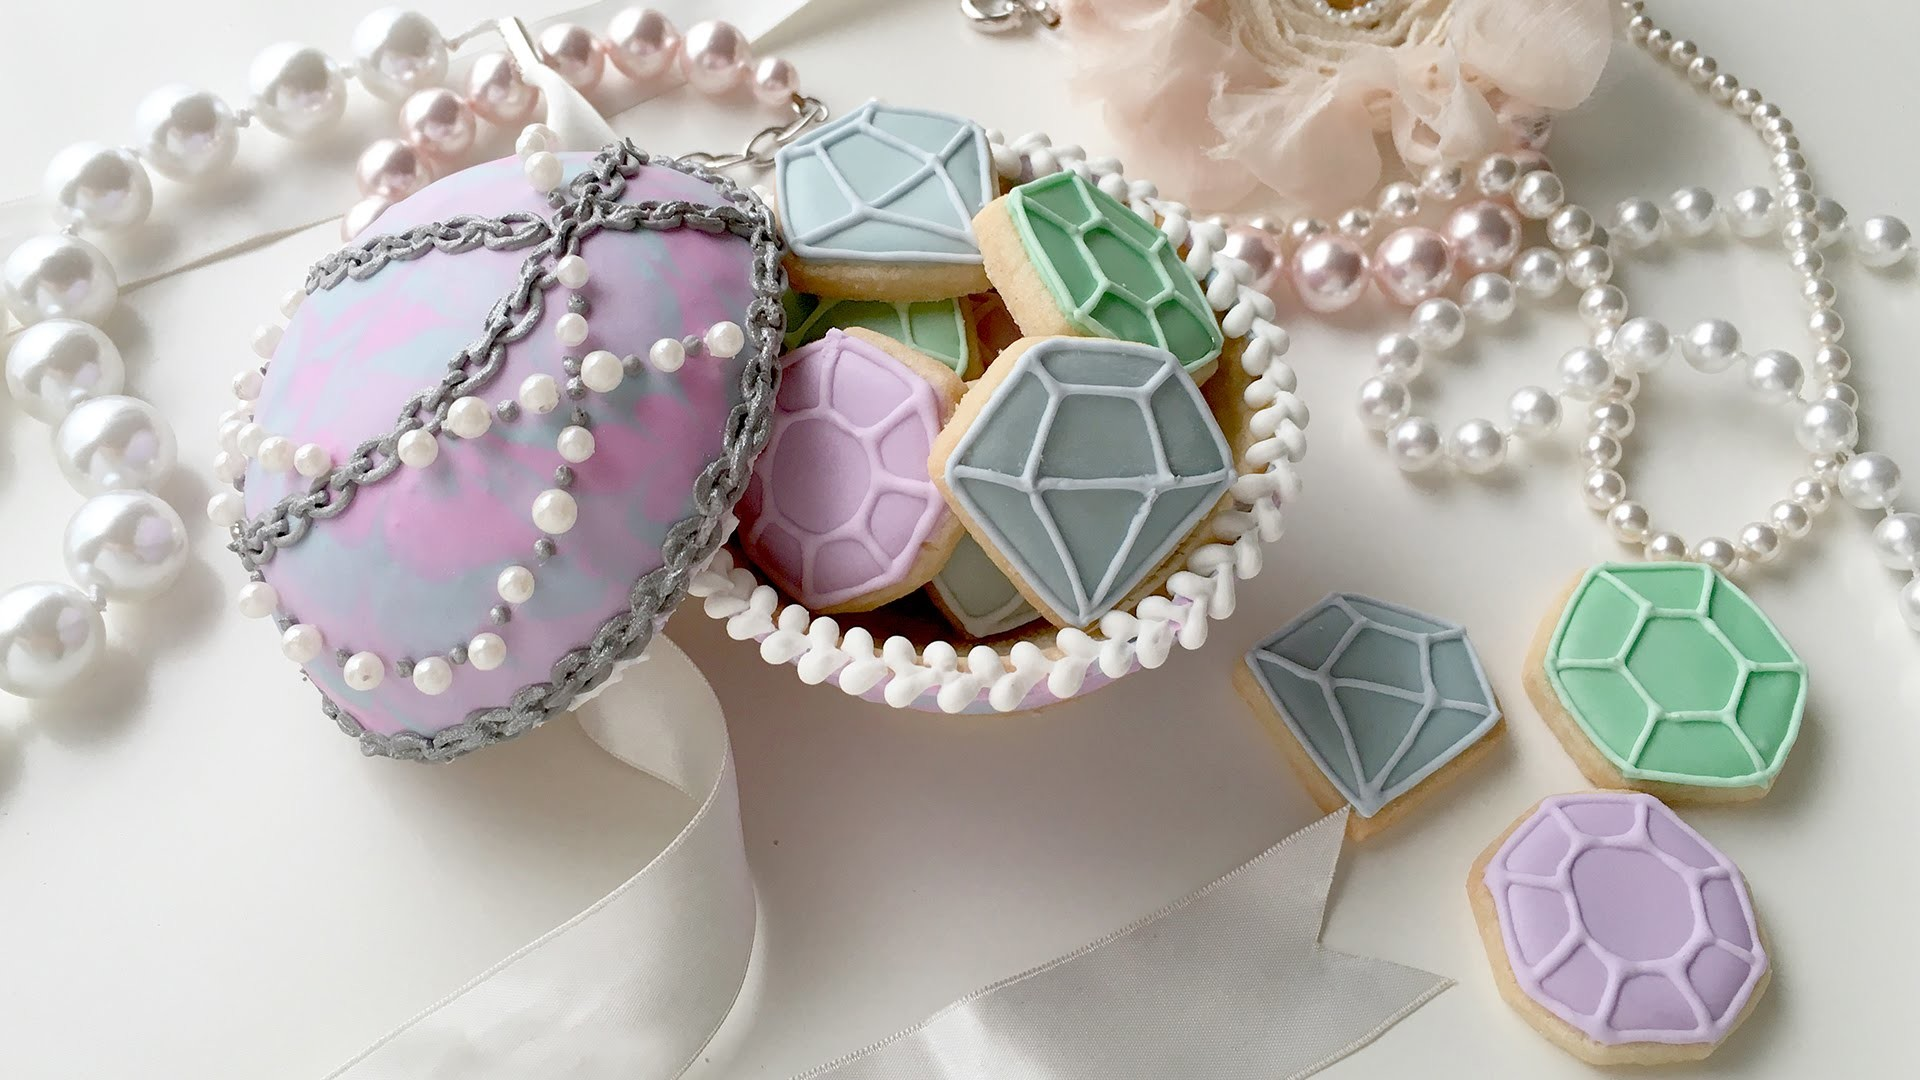 How To Make A Jewelry Cookie Box For Mother's Day with Wilton Decorating Supplies!